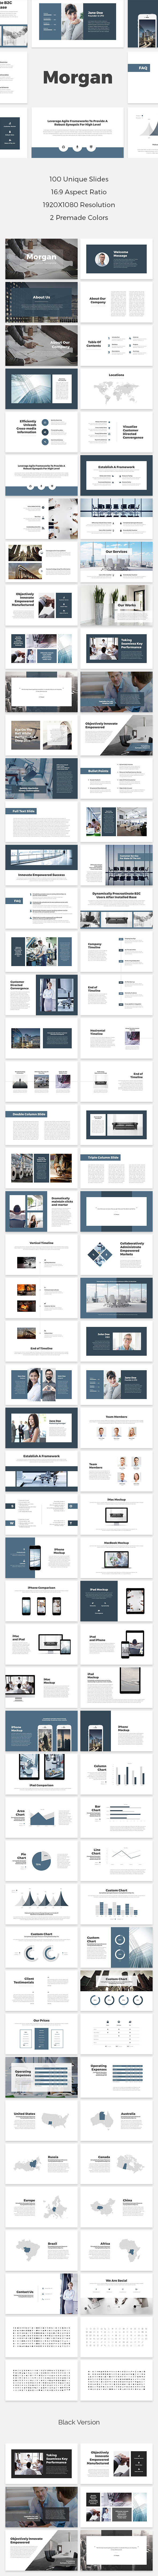 Morgan PowerPoint Template - PowerPoint Templates Presentation Templates